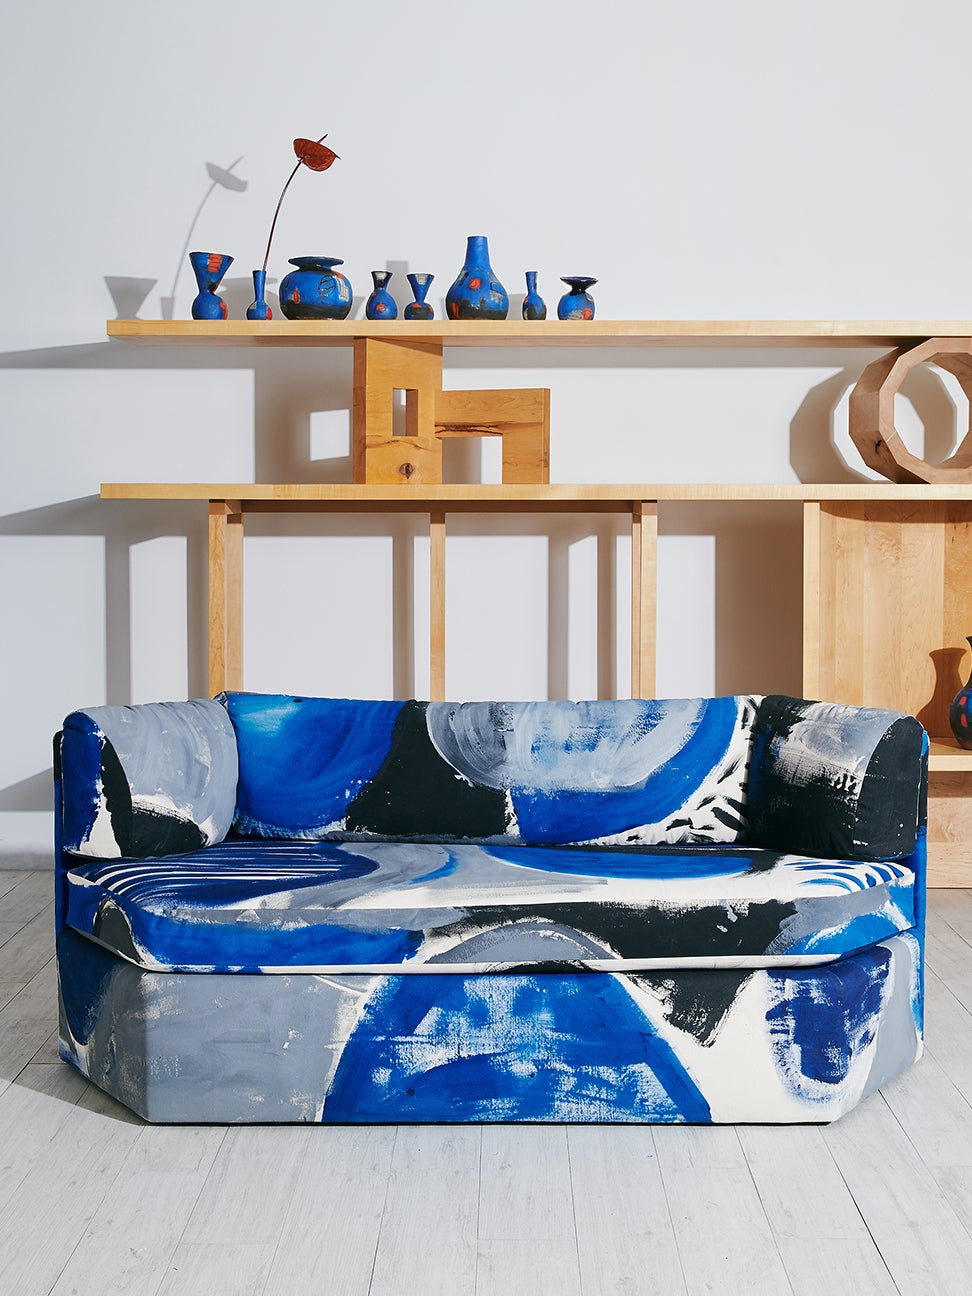 00-FEATURE-painted-fabric-sofa-domino